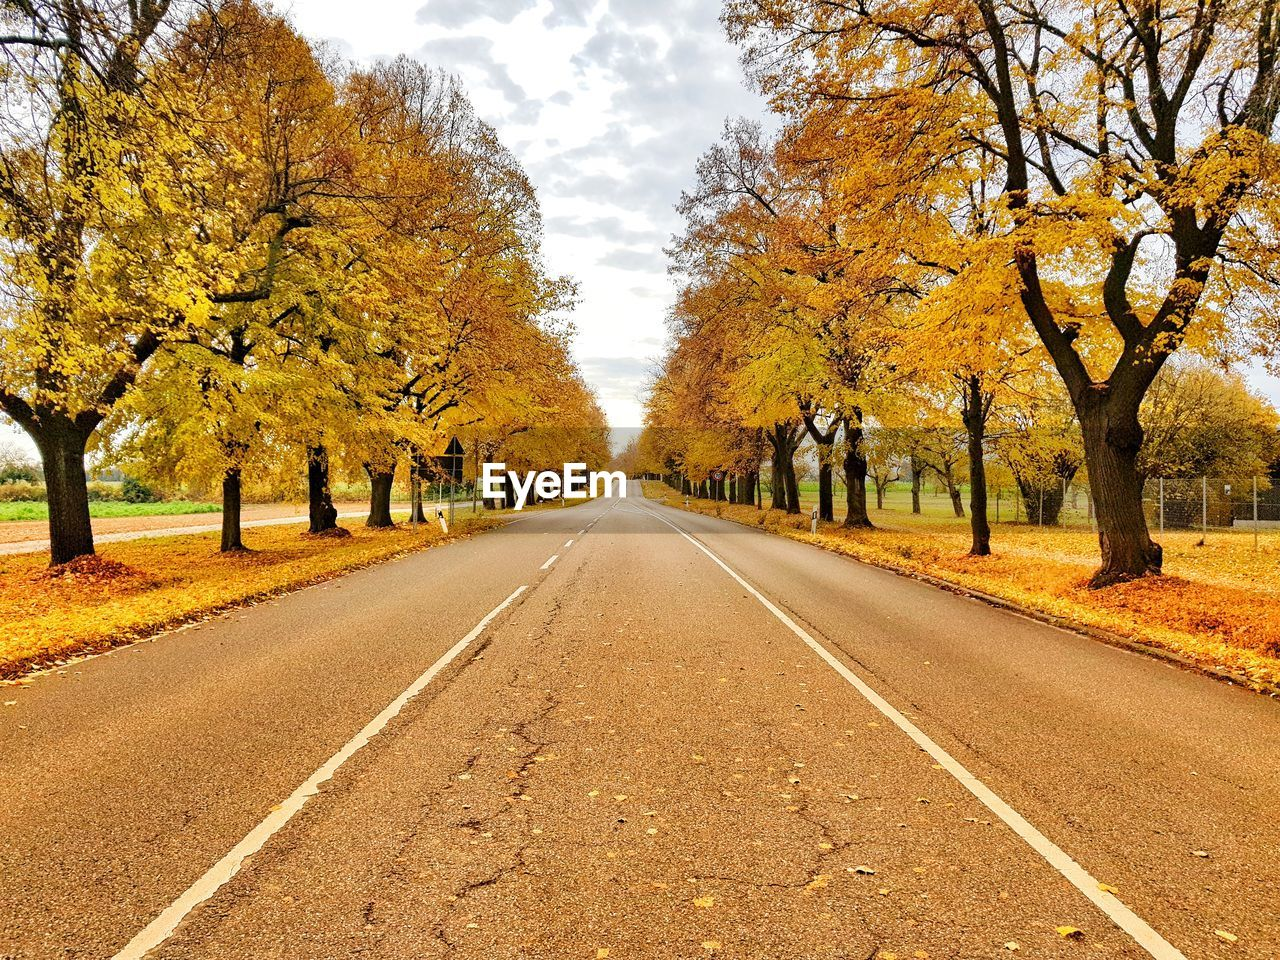 tree, autumn, change, the way forward, plant, direction, road, diminishing perspective, beauty in nature, nature, transportation, day, road marking, marking, growth, vanishing point, tranquility, symbol, treelined, outdoors, no people, autumn collection, long, fall, dividing line